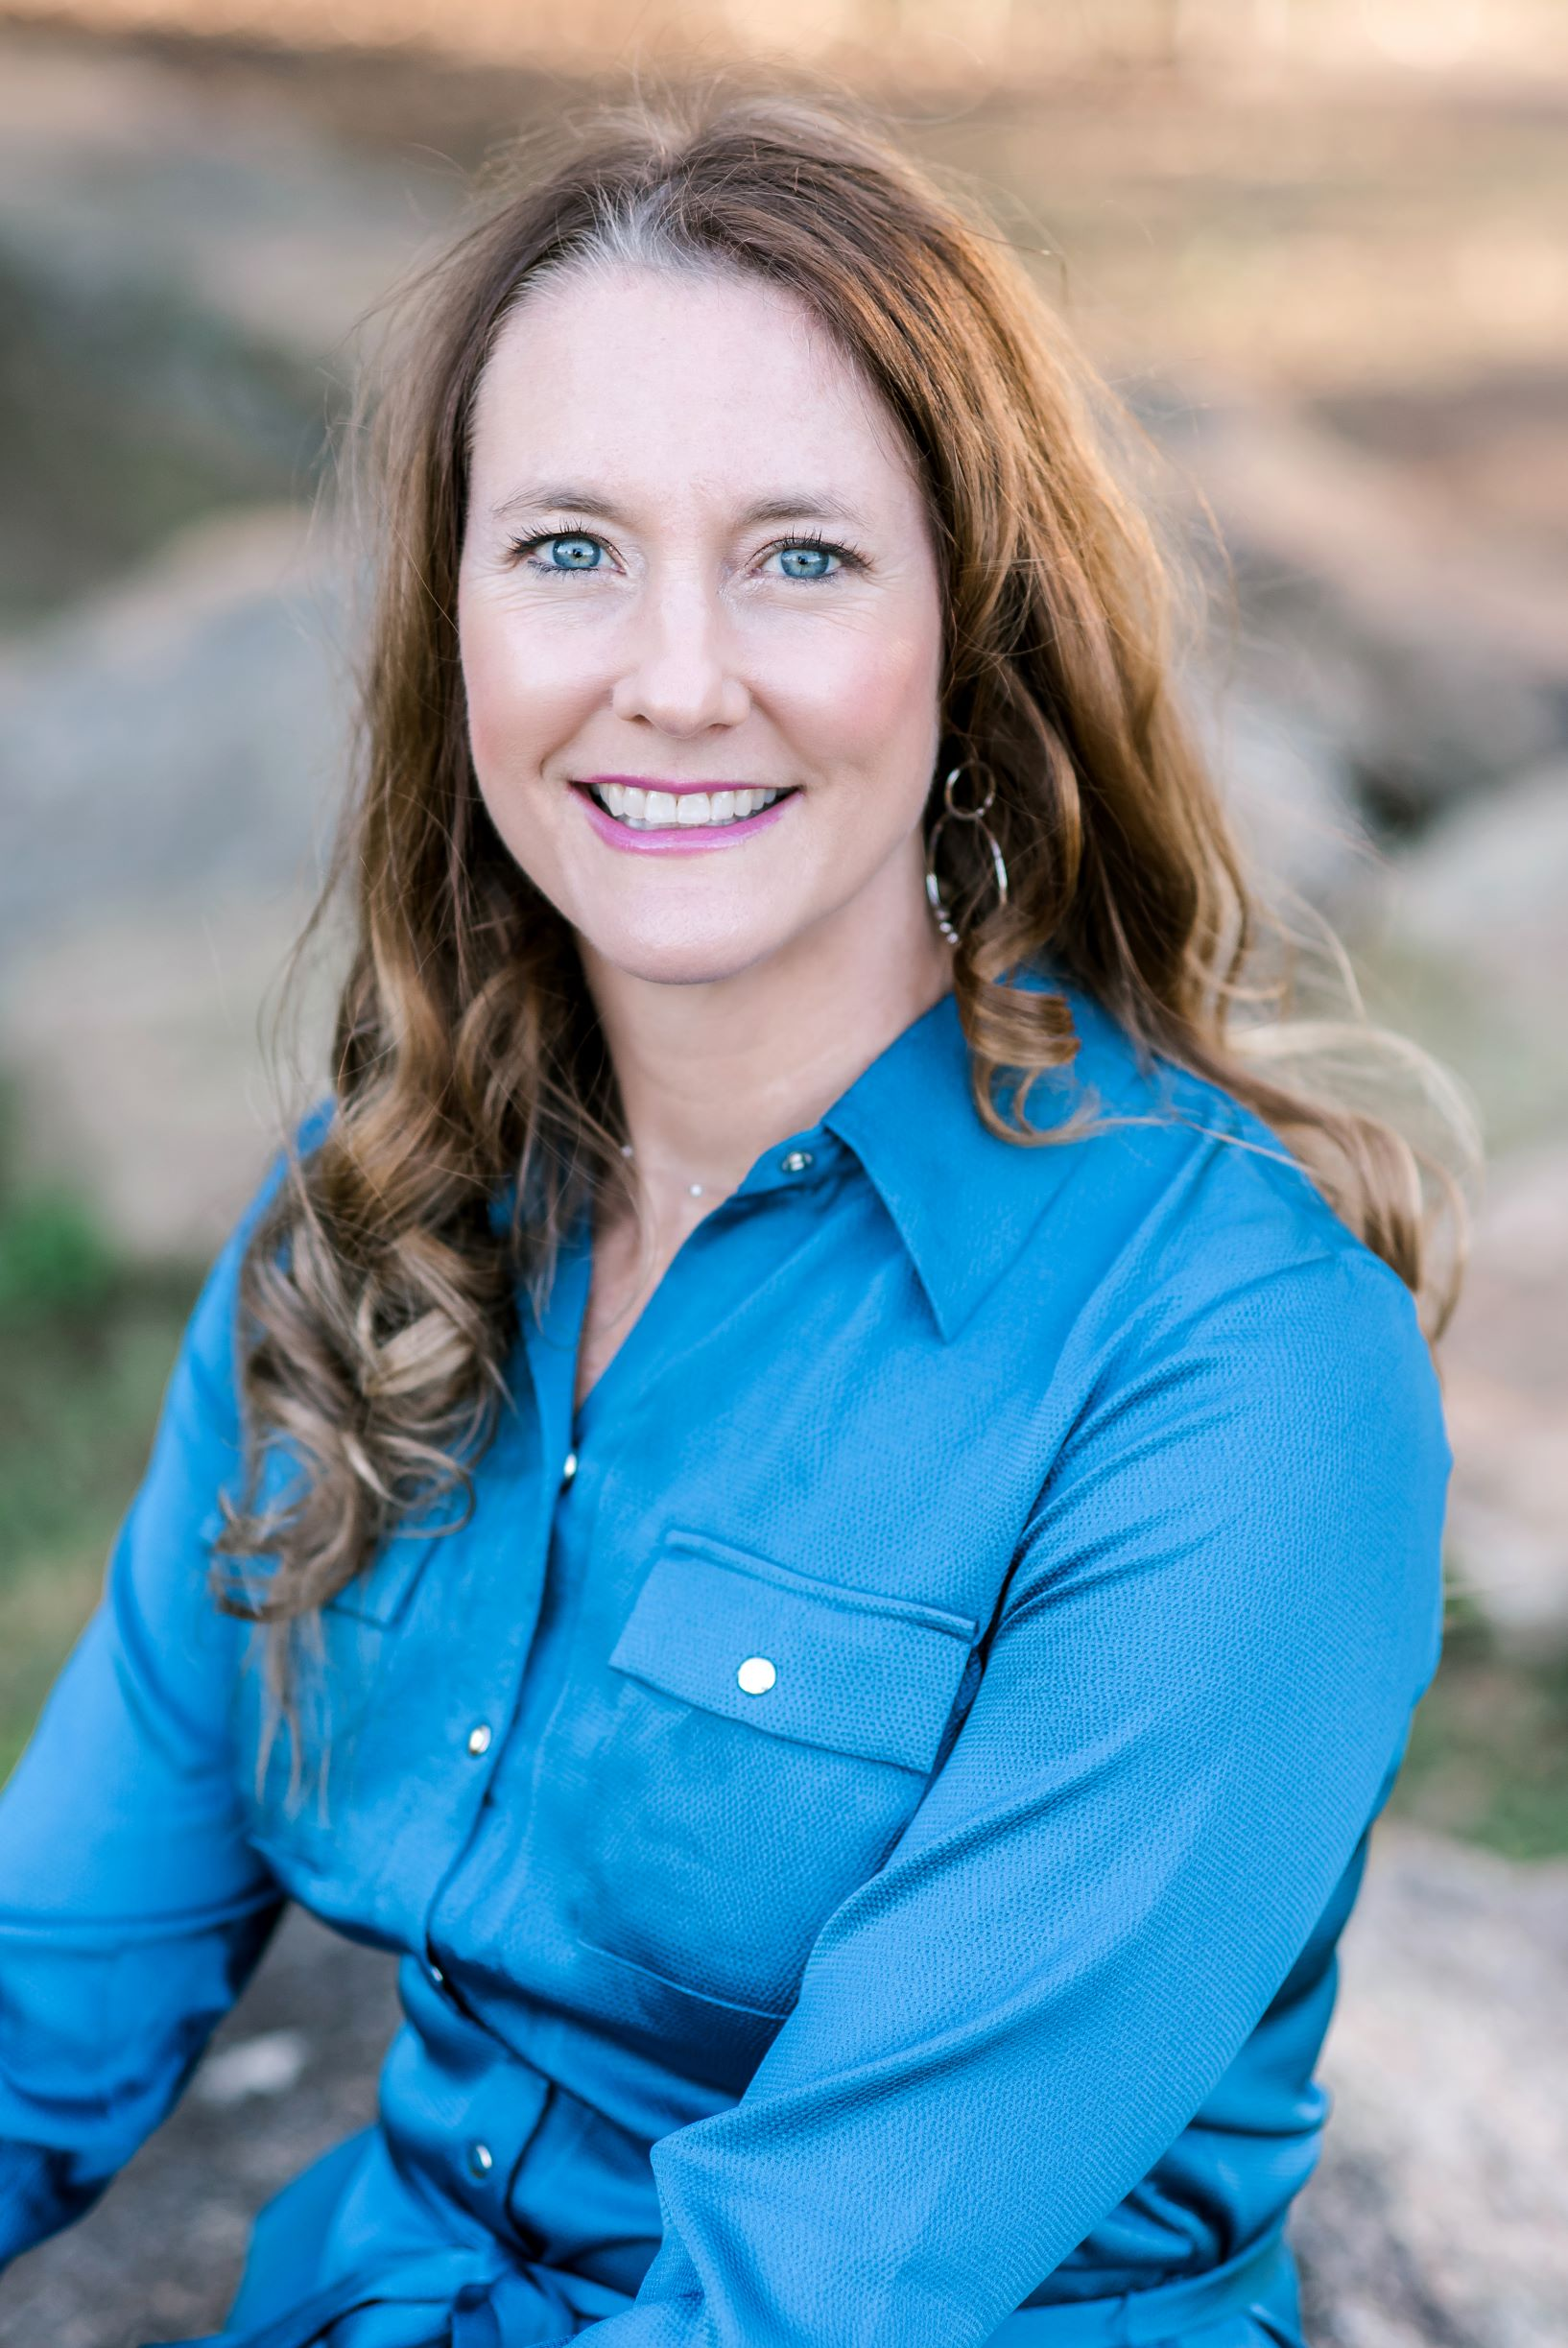 ANNOUNCEMENT-Please Welcome Lisa S. Williams to our TEAM.